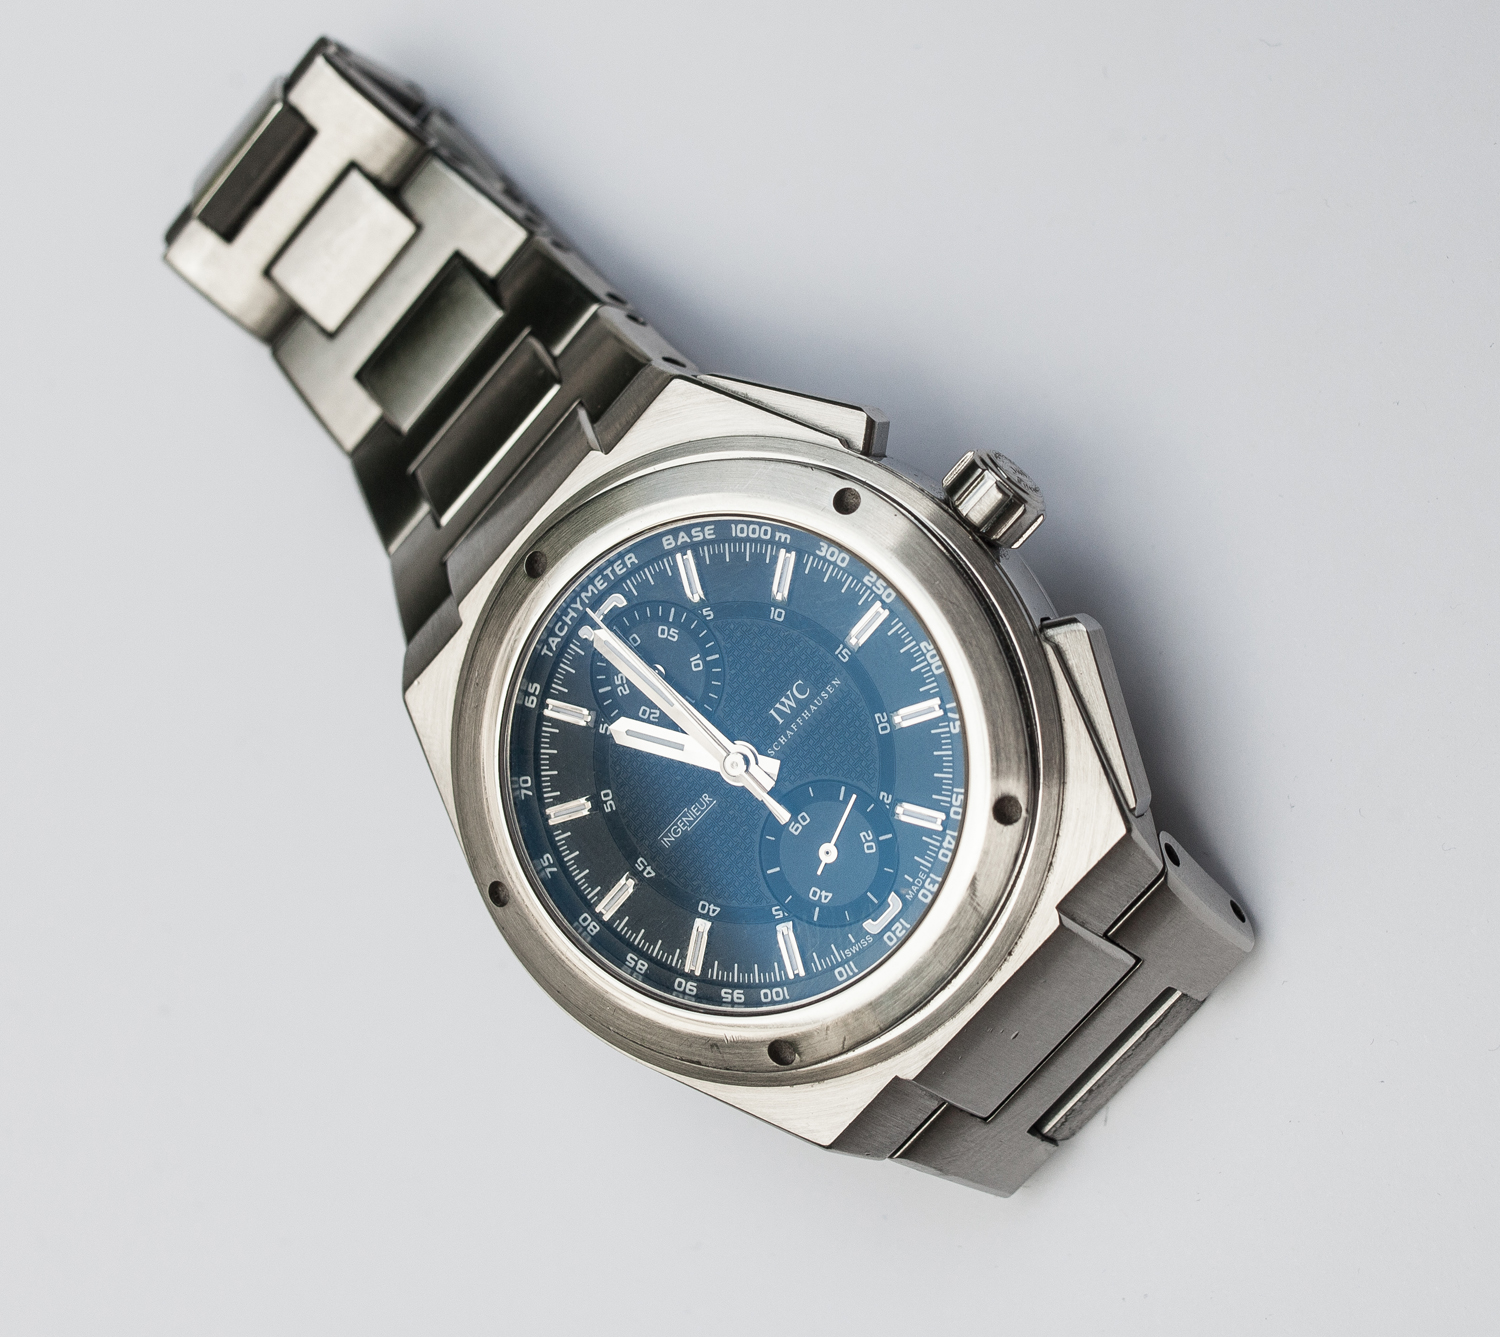 Iwc Ingenieur 3725 Review